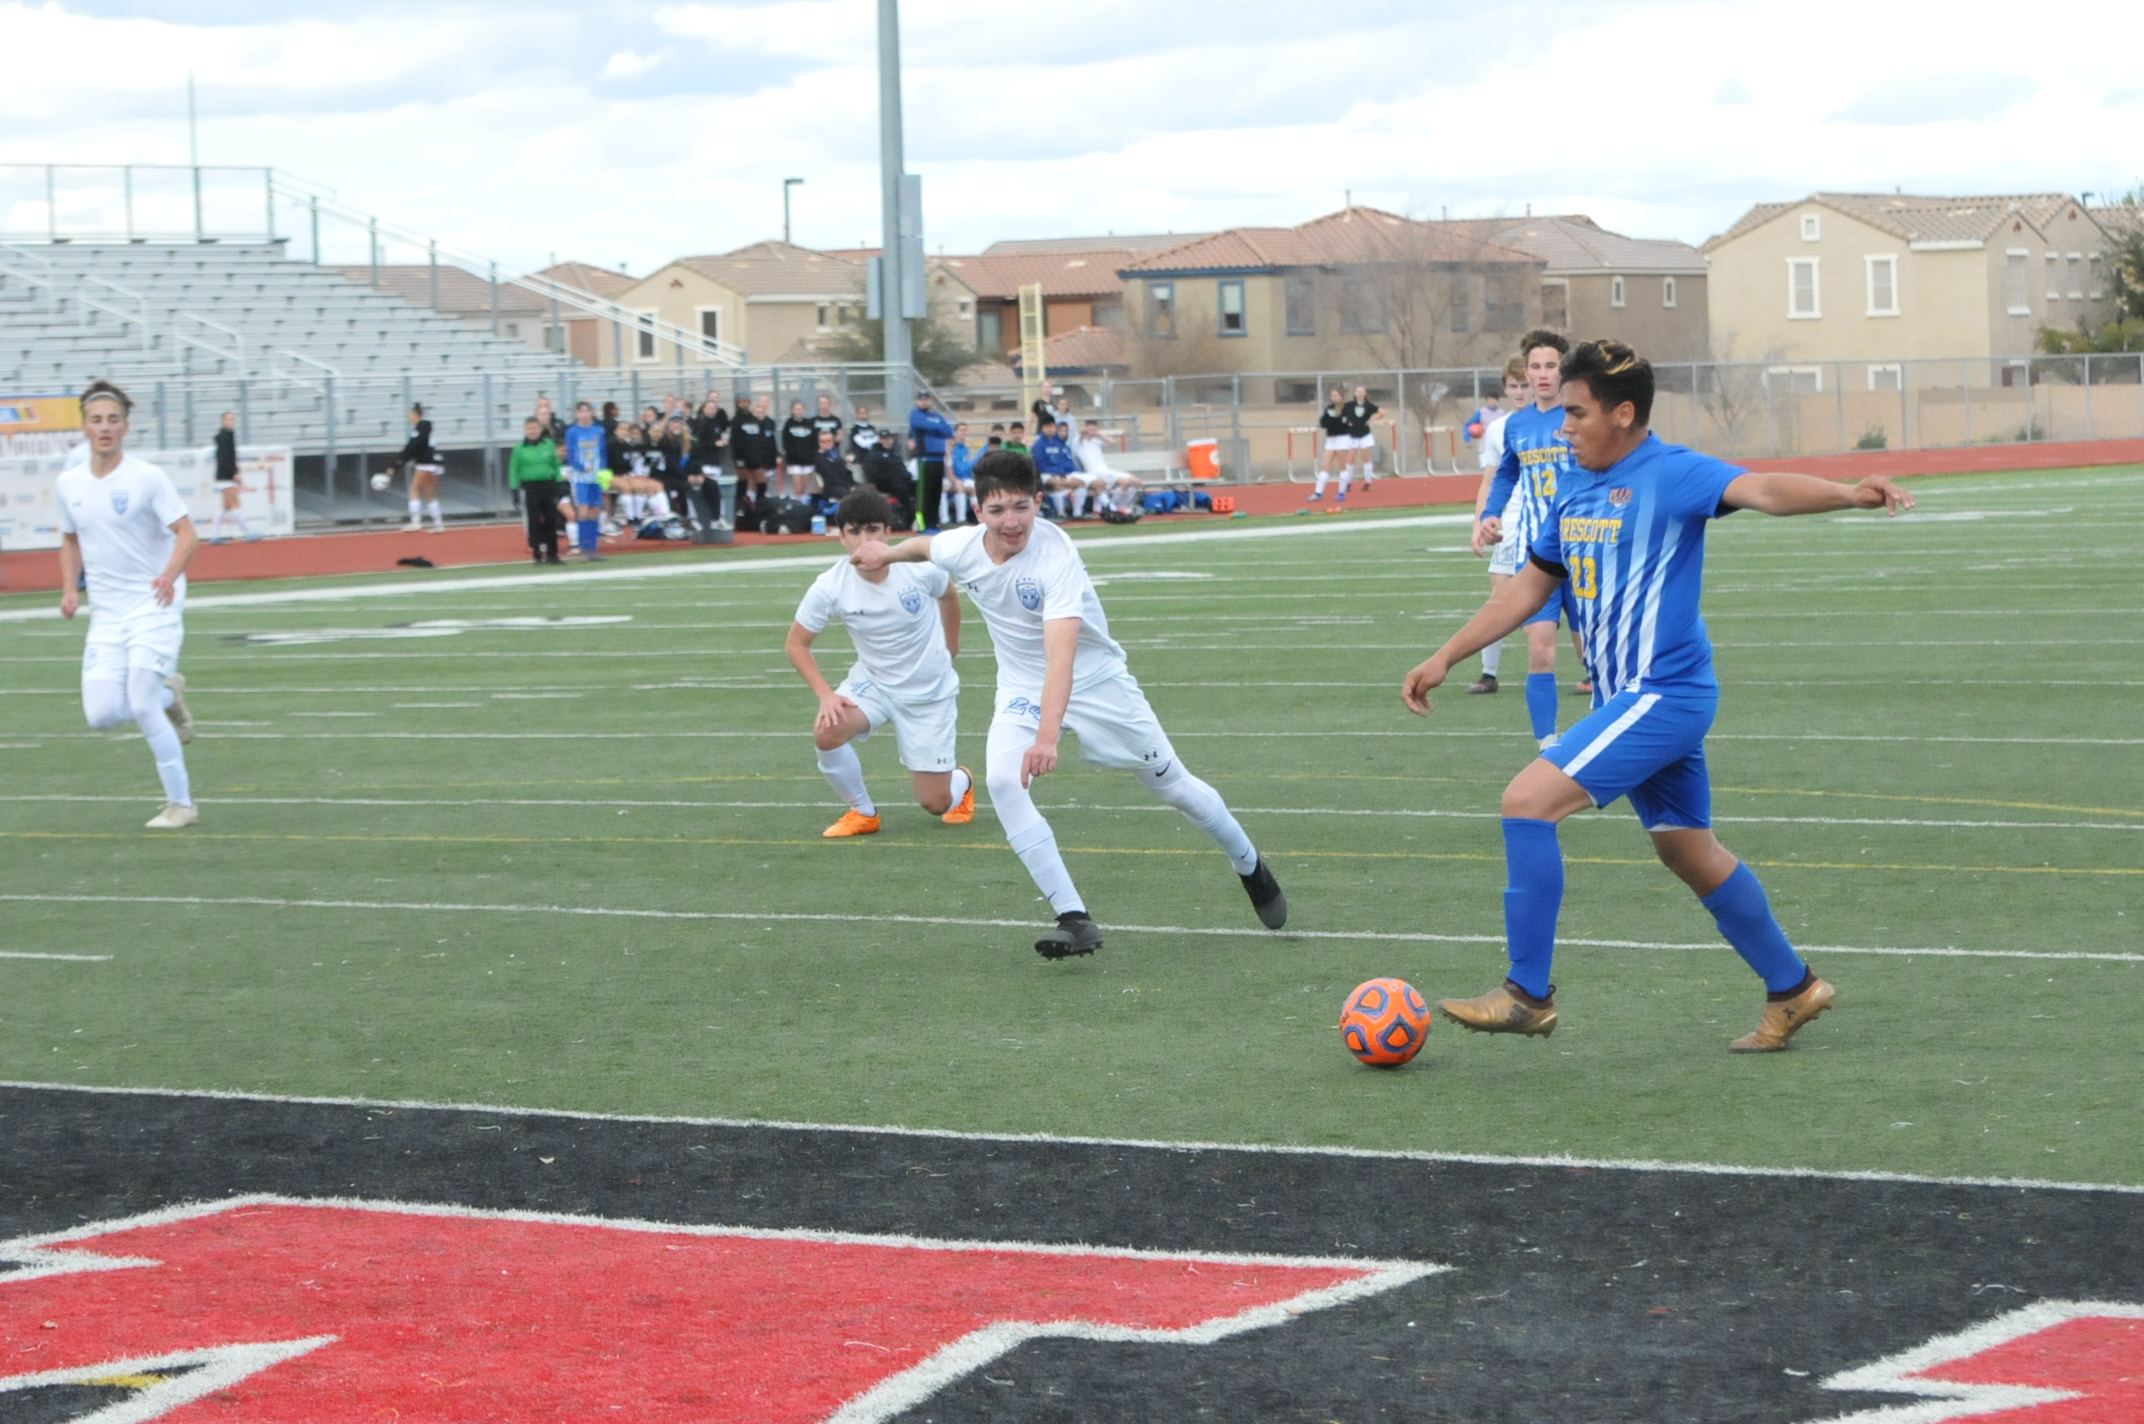 Prescott's boys soccer team edges Catalina Foothills, advances to state title match for 1st time